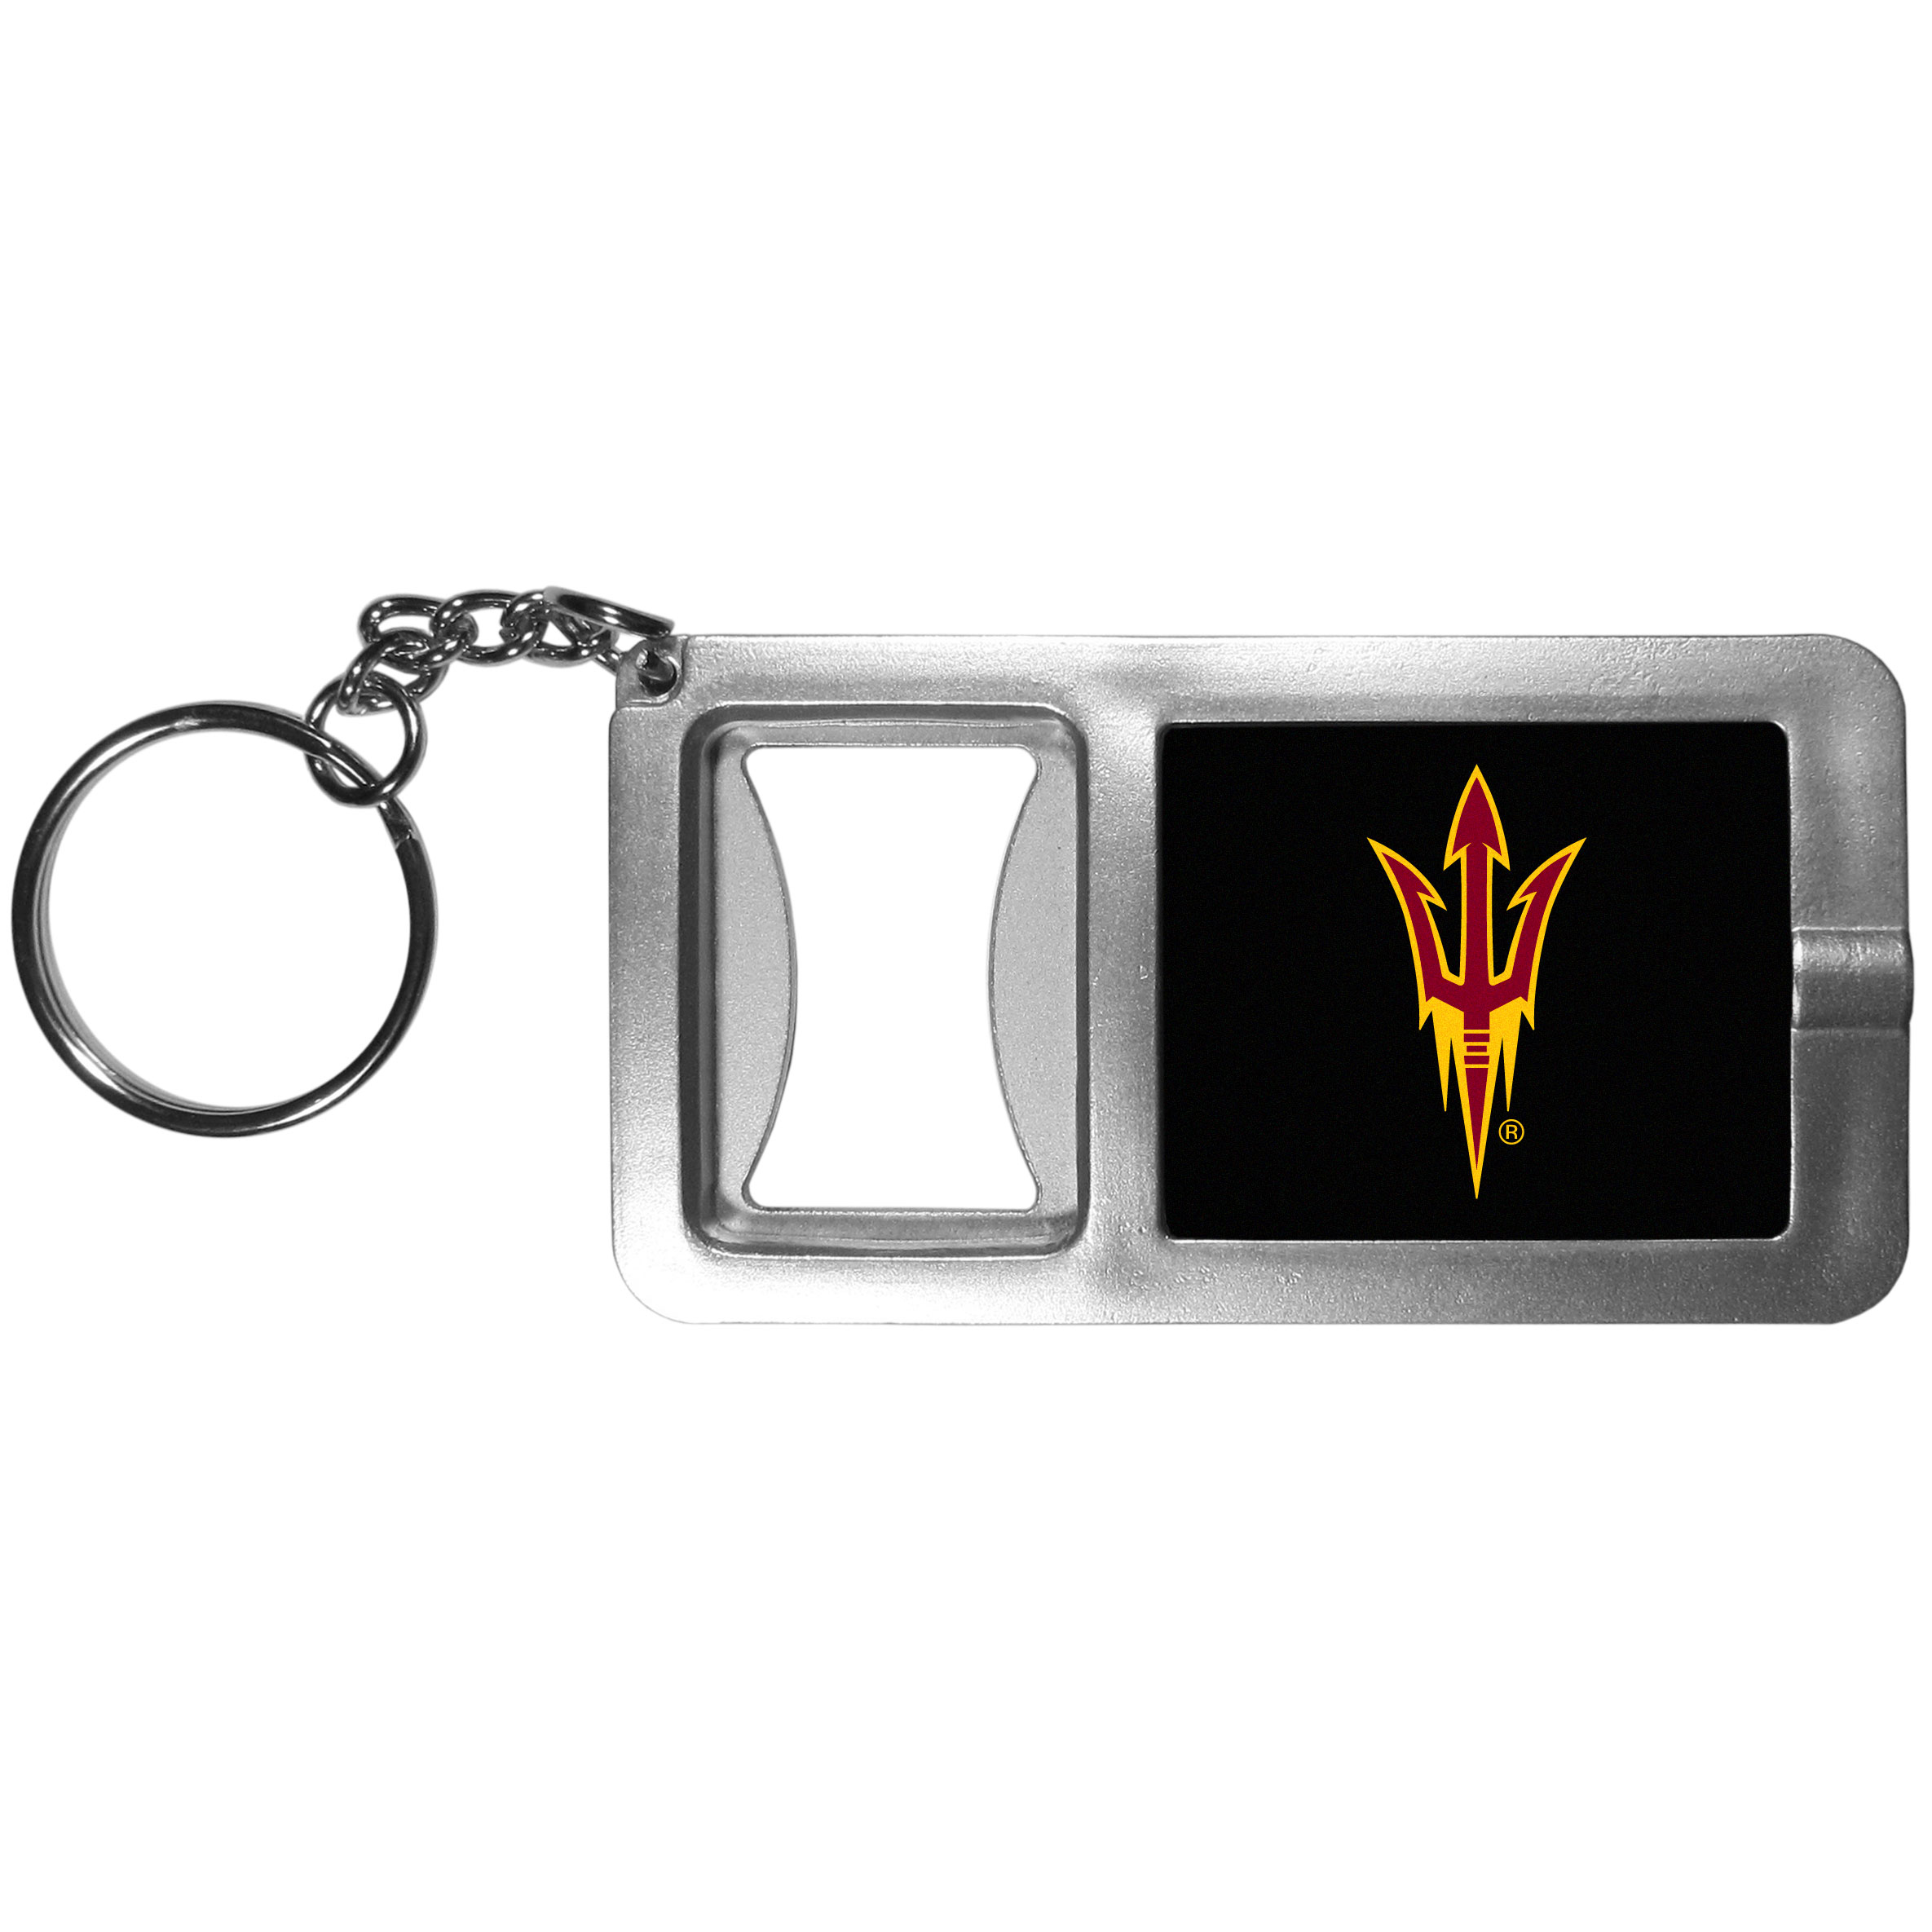 Arizona St. Sun Devils Flashlight Key Chain with Bottle Opener - Never be without light with our Arizona St. Sun Devils flashlight keychain that features a handy bottle opener feature. This versatile key chain is perfect for camping and travel and is a great way to show off your team pride!